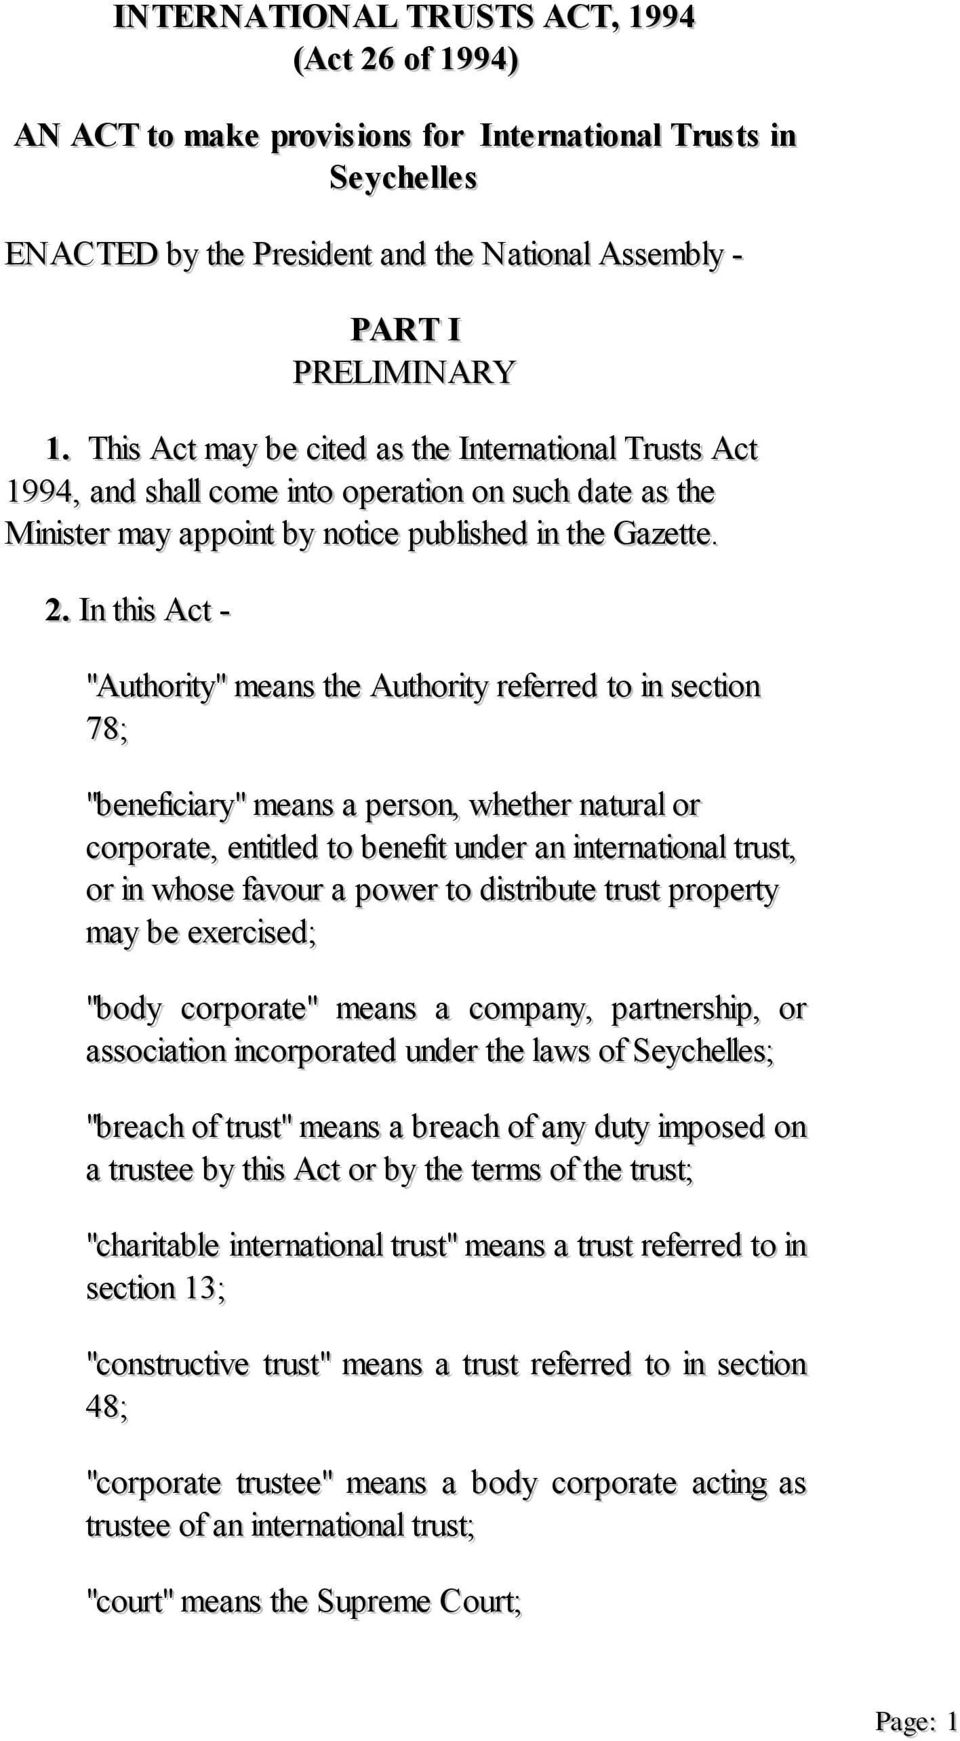 This Act may be cited as the International Trusts Act 1994, and shall come into operation on such date as the Minister may appoint by notice published in the Gazette. 2.